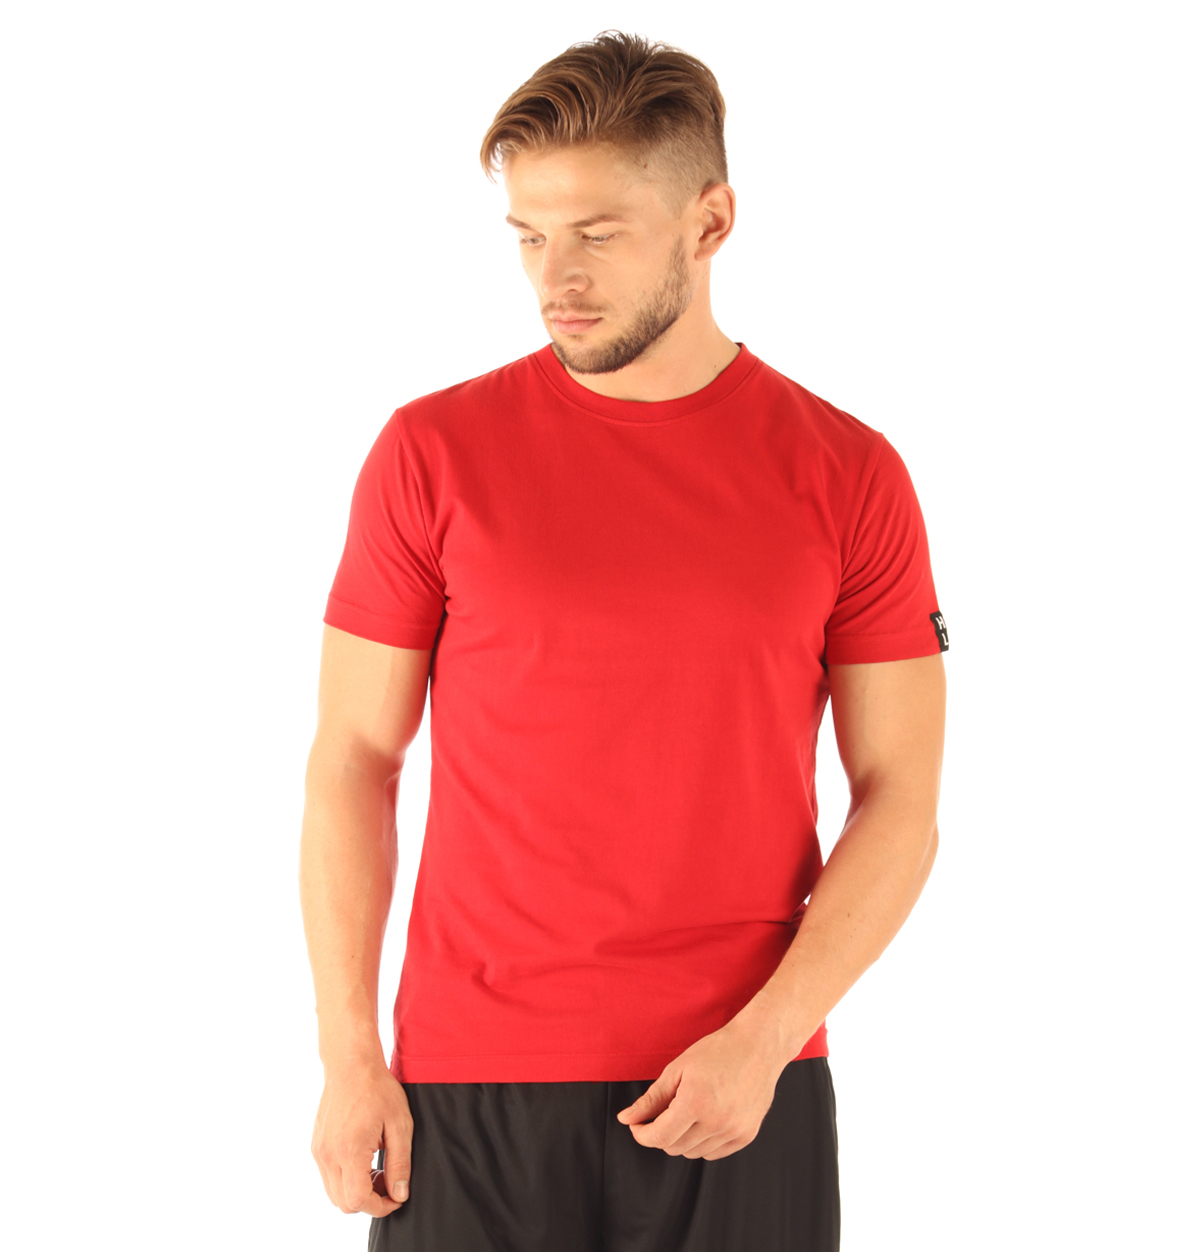 MRNT_CHASE_RED_FRONT.jpg